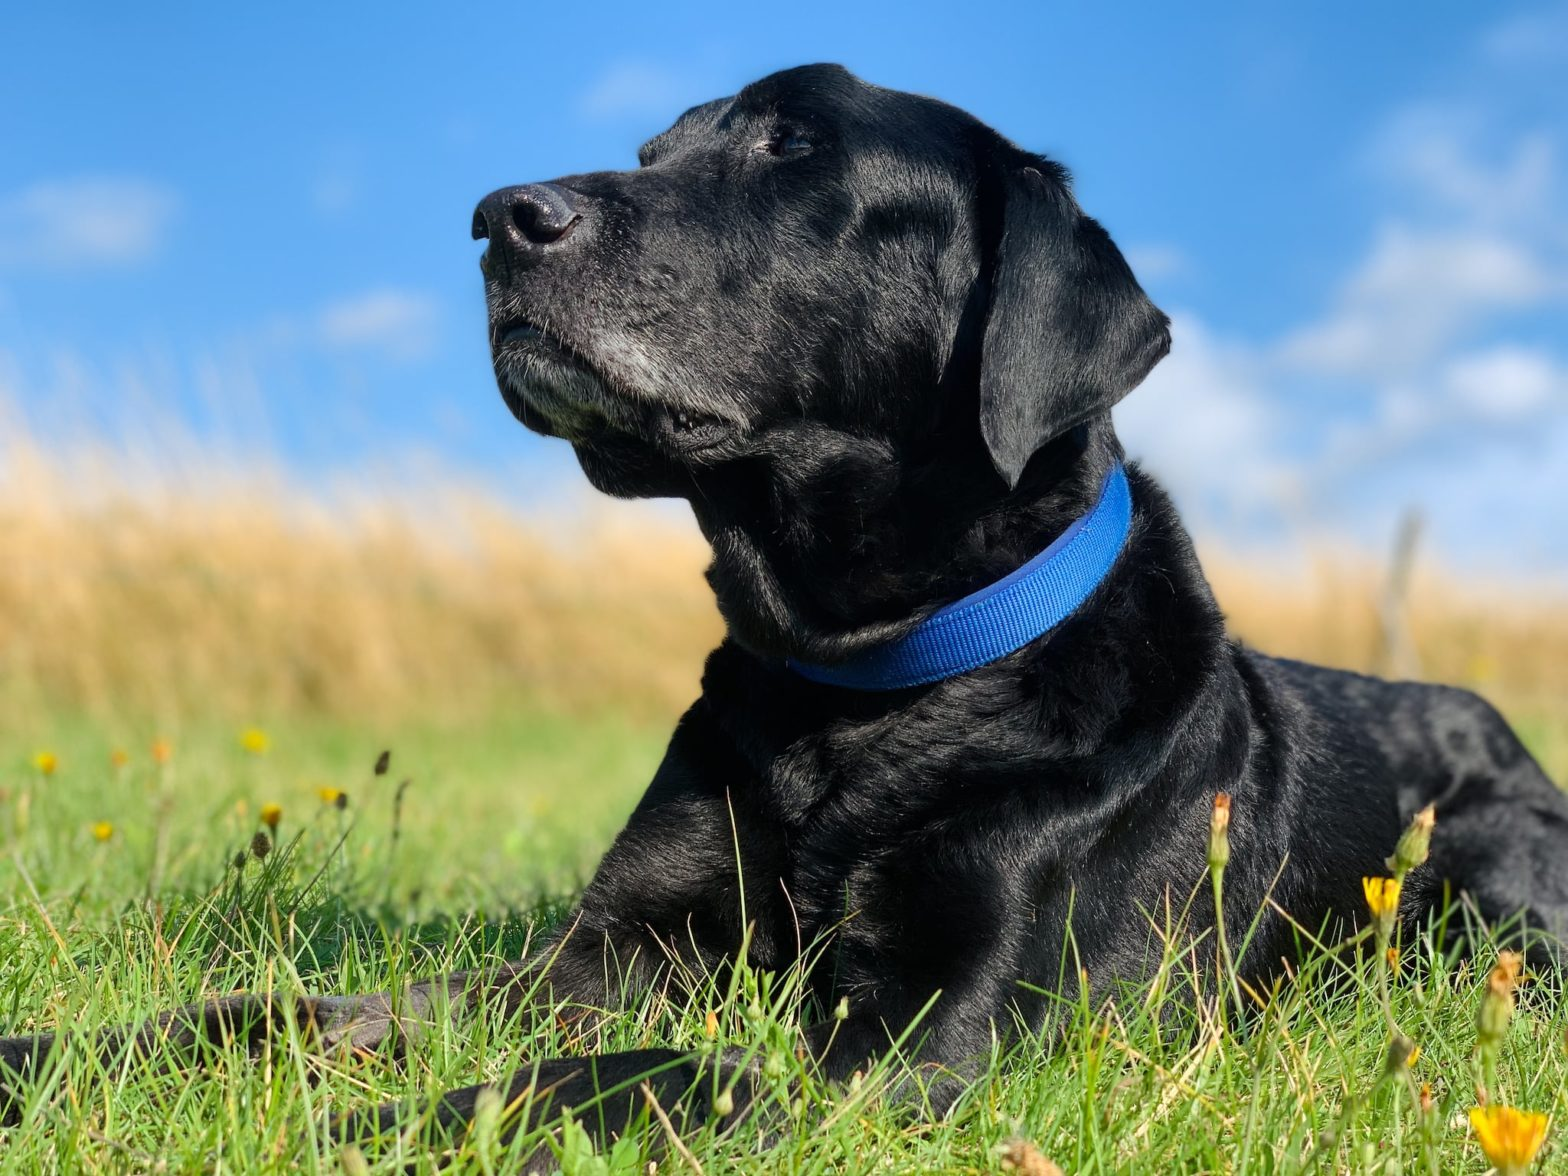 Black Labrador enjoying warm weather in the fields surrounded by wildflowers